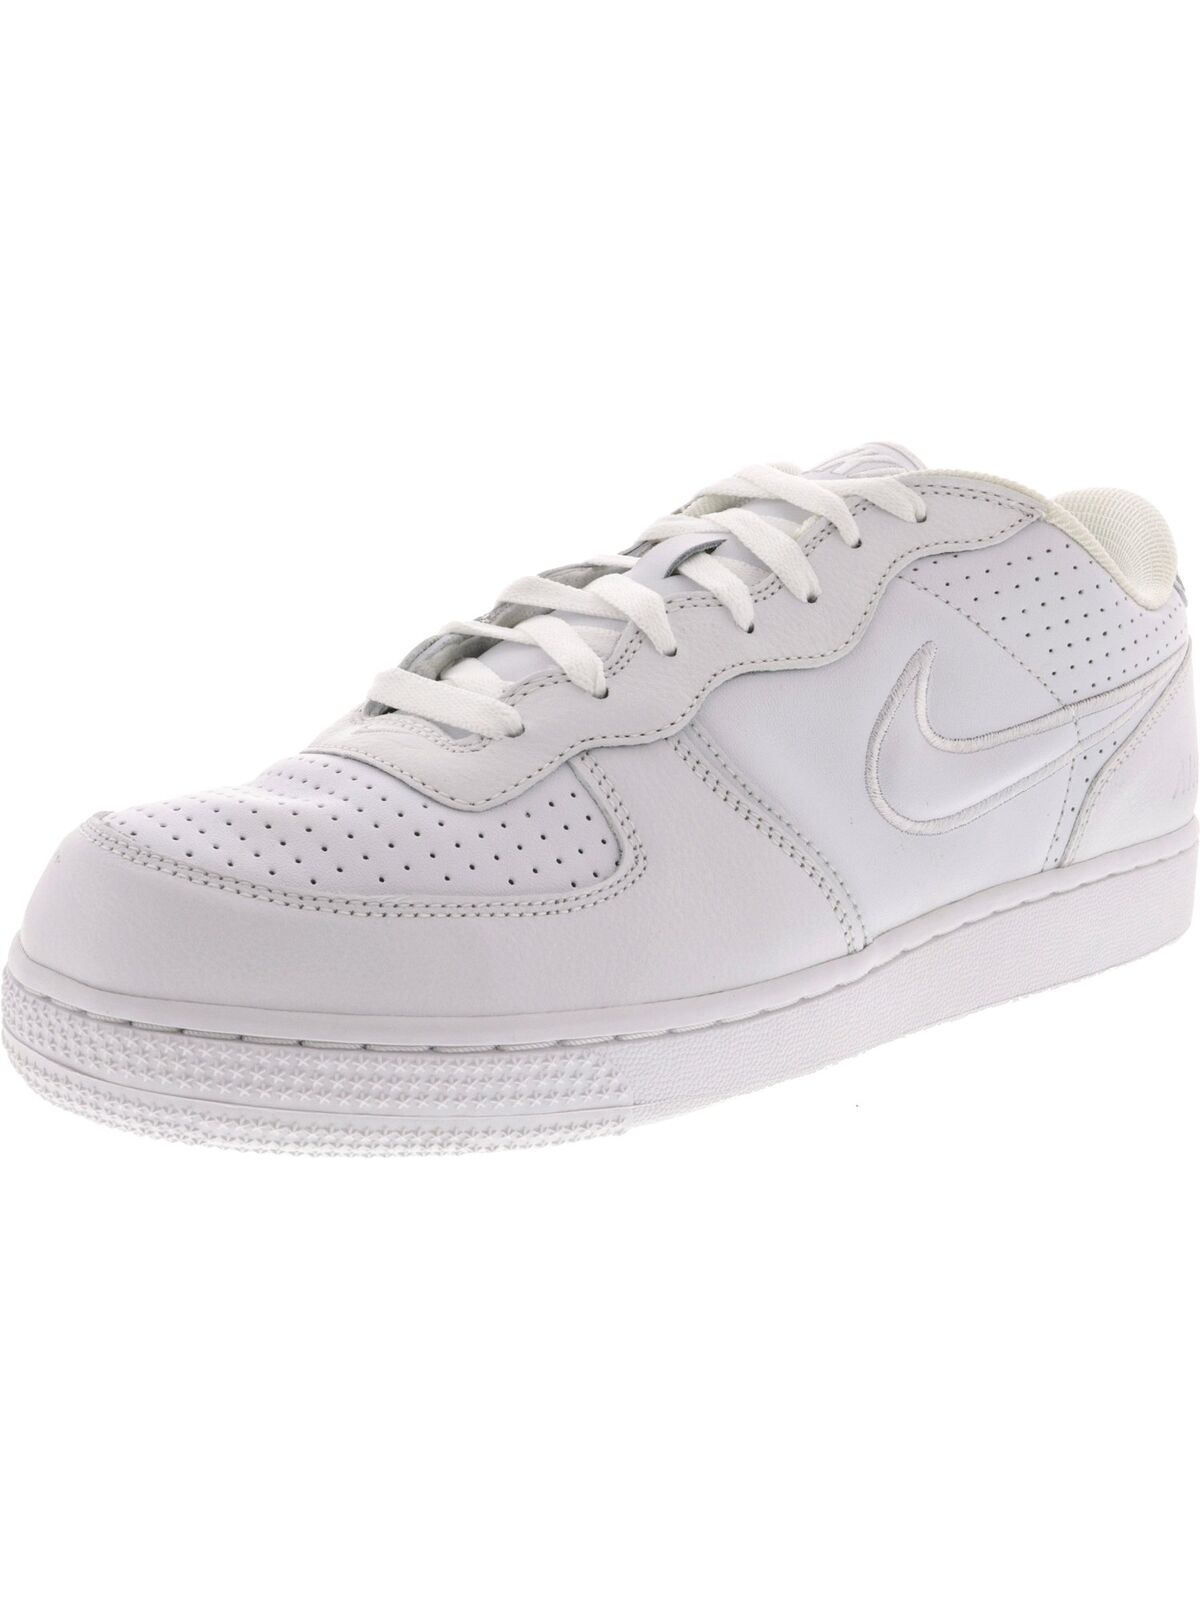 shoes Running Ankle High Infiltrator Zoom Air Men's Nike